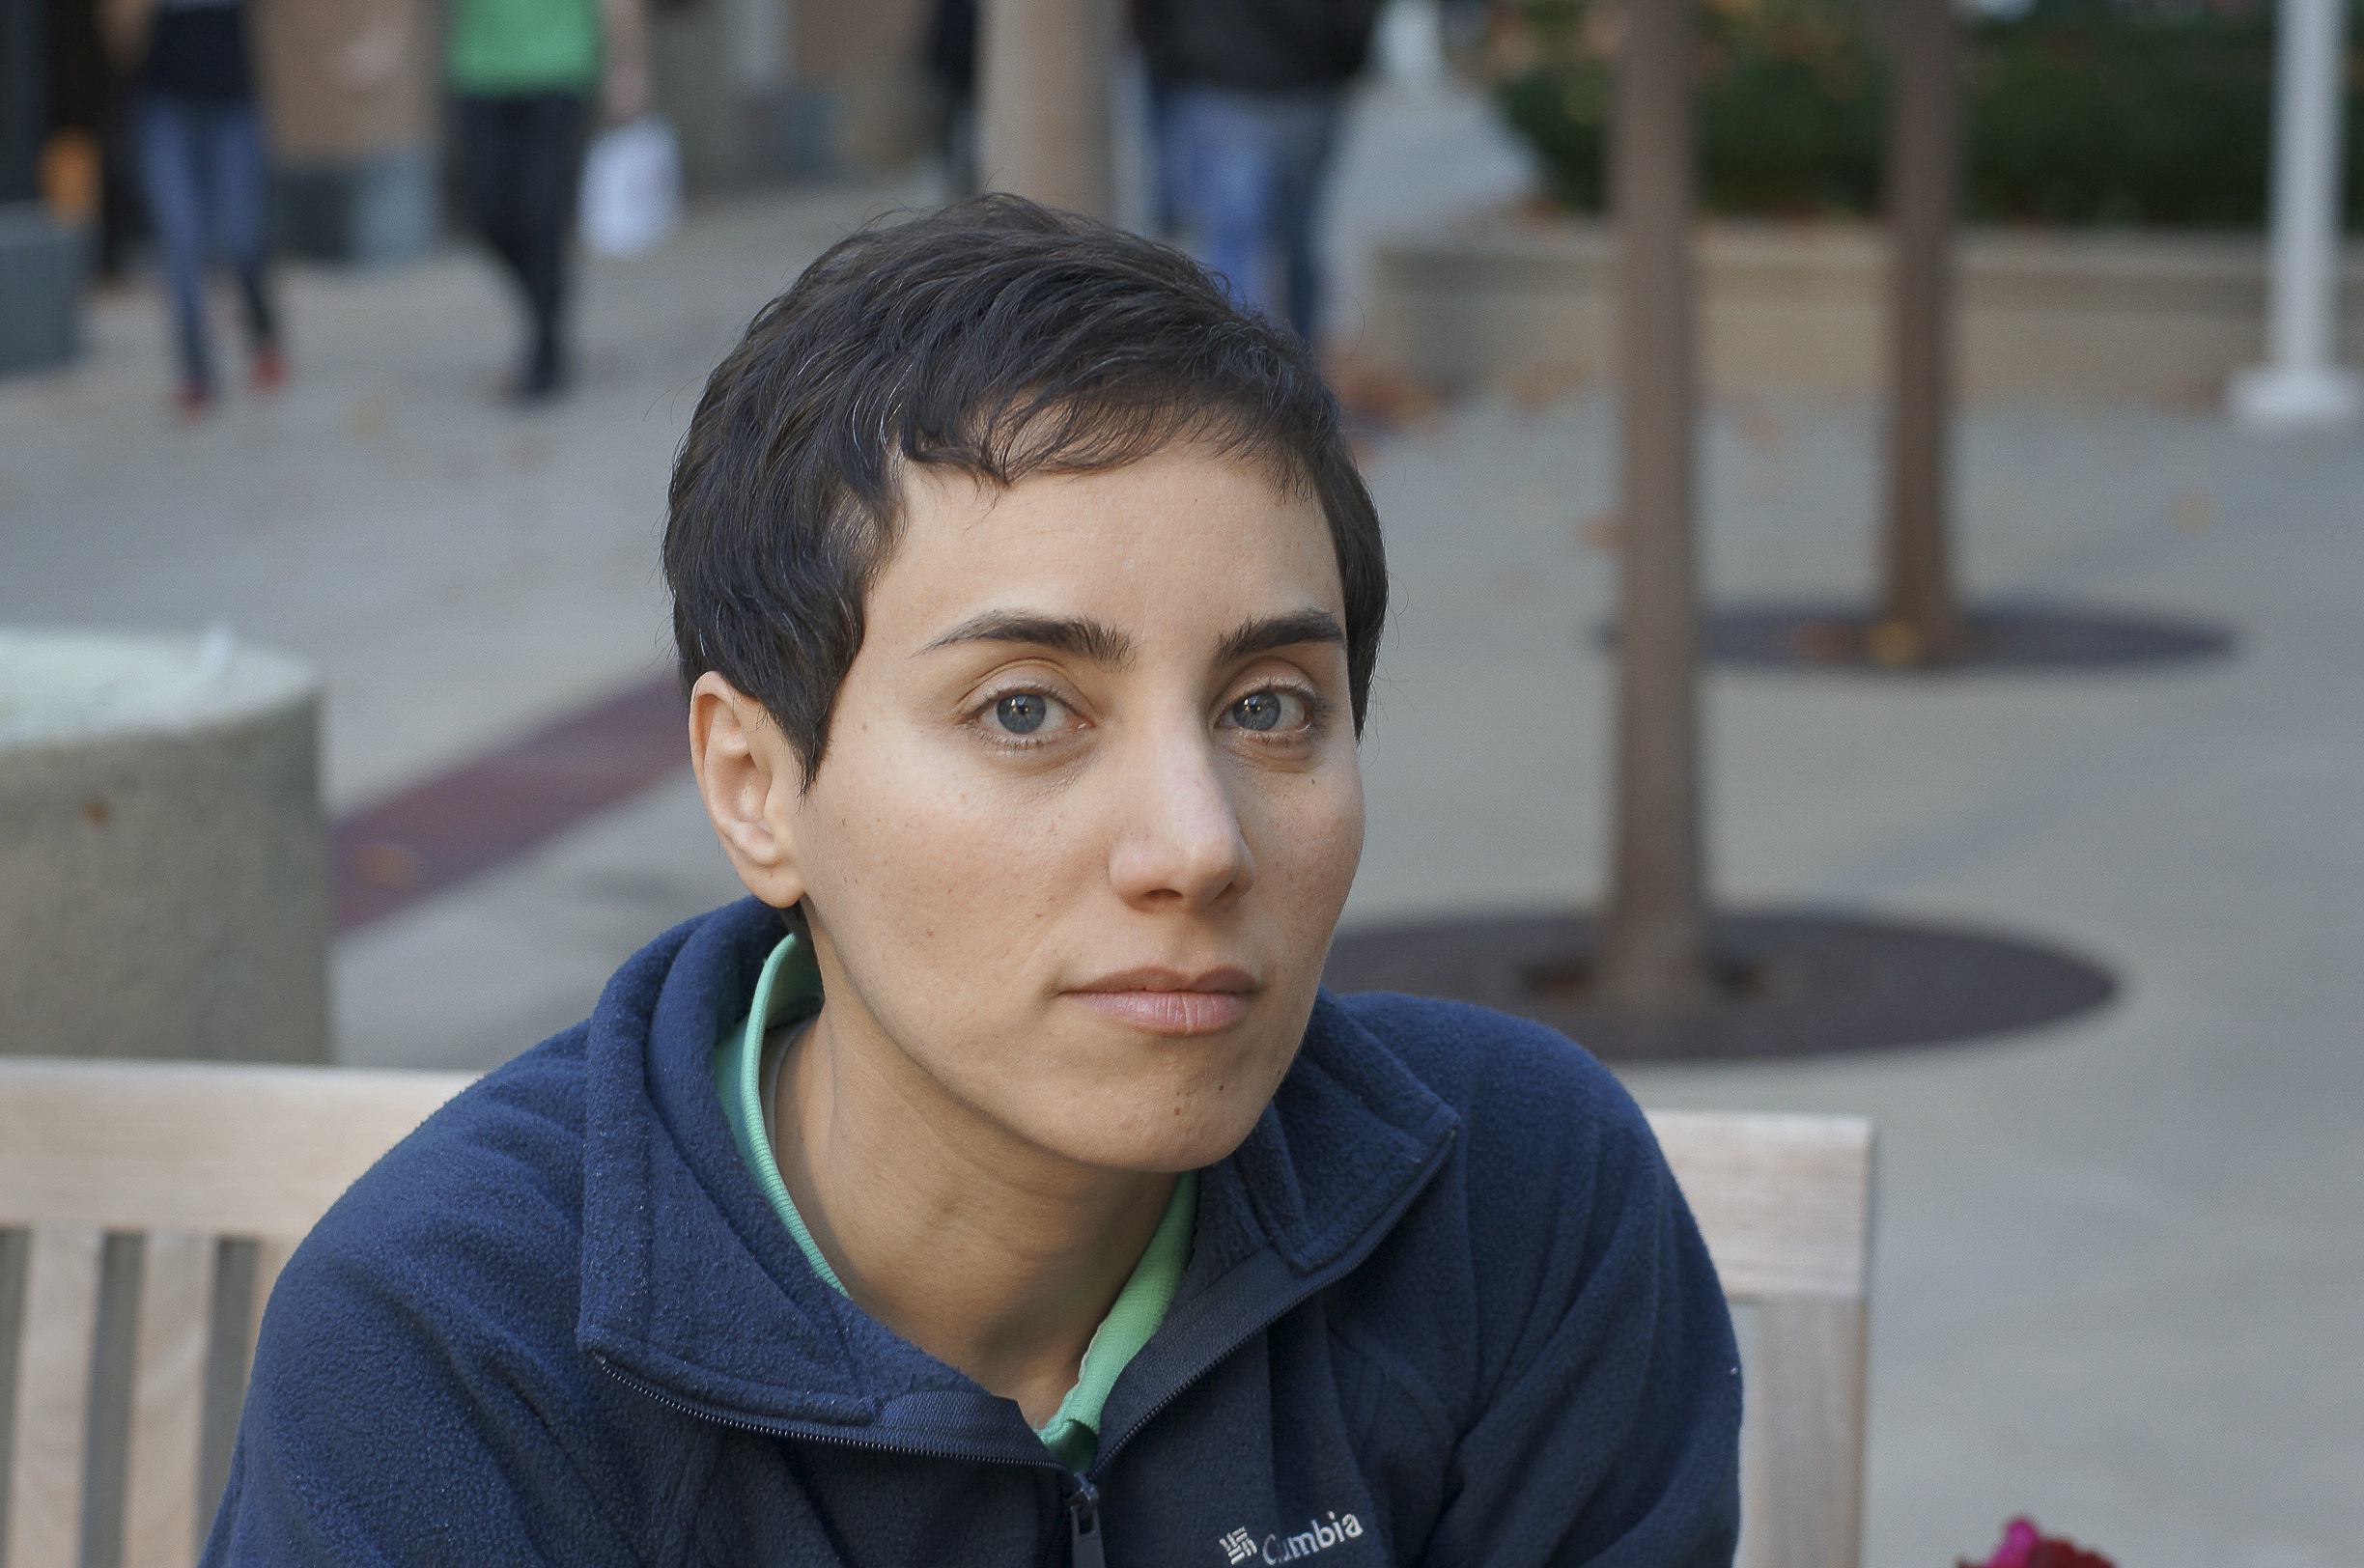 Iranian-American Woman Breaks Glass Ceiling with Math Prize